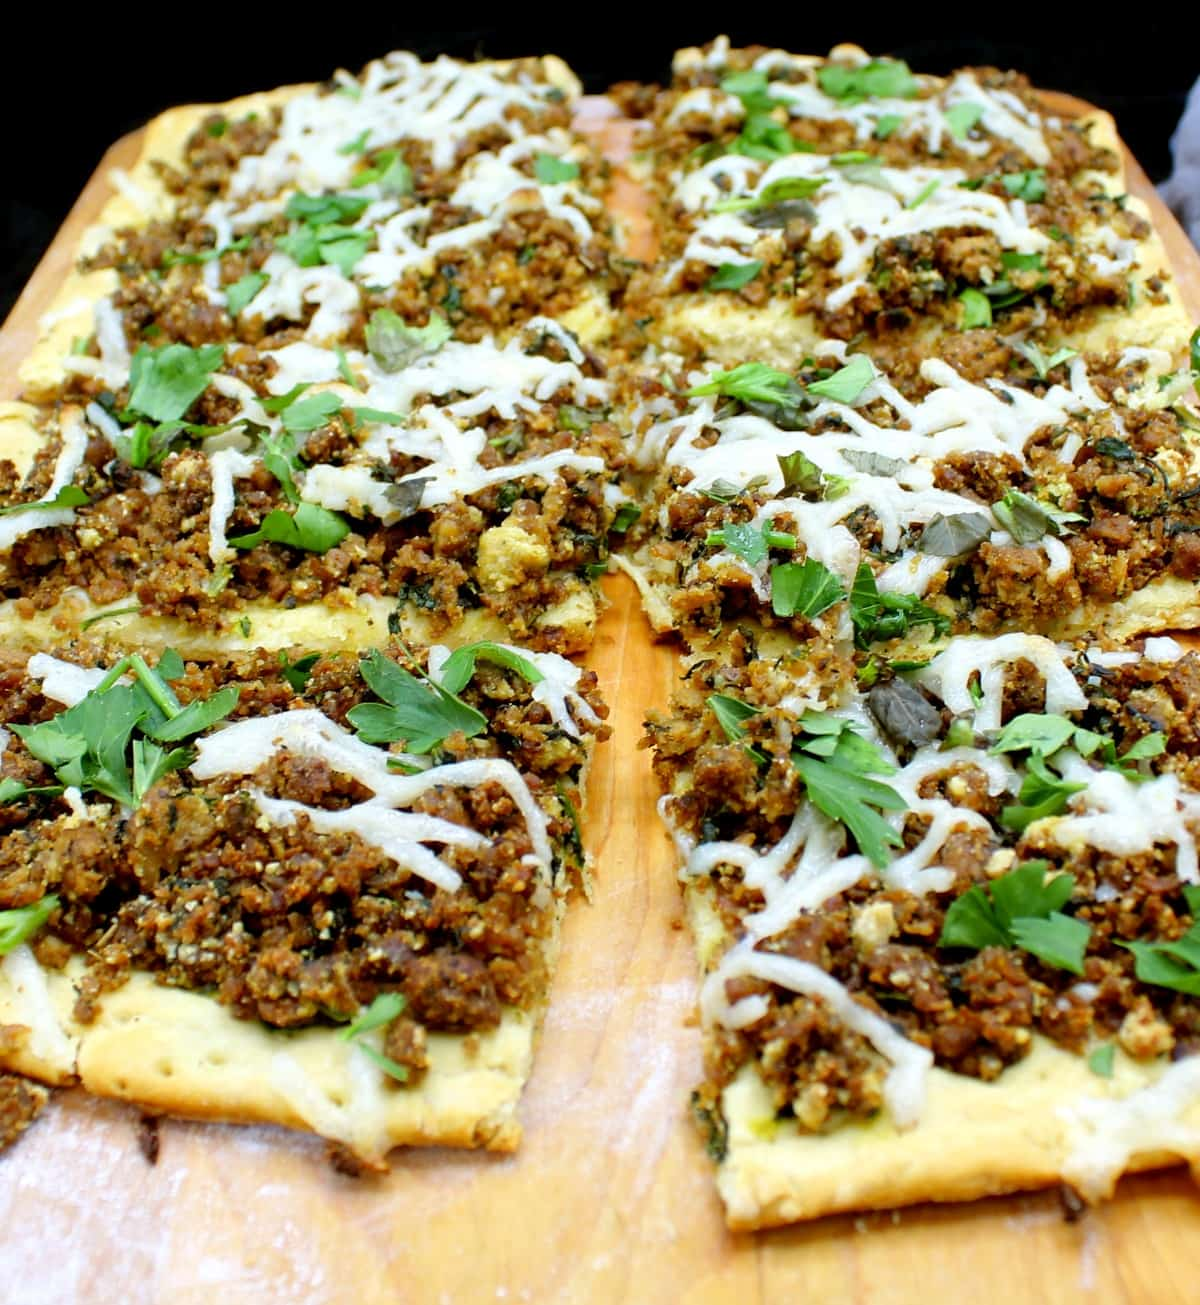 Slices of a rectangular vegan breakfast sausage pizza with a biscuit crust with cheese and parsley and other herbs on a chopping board.